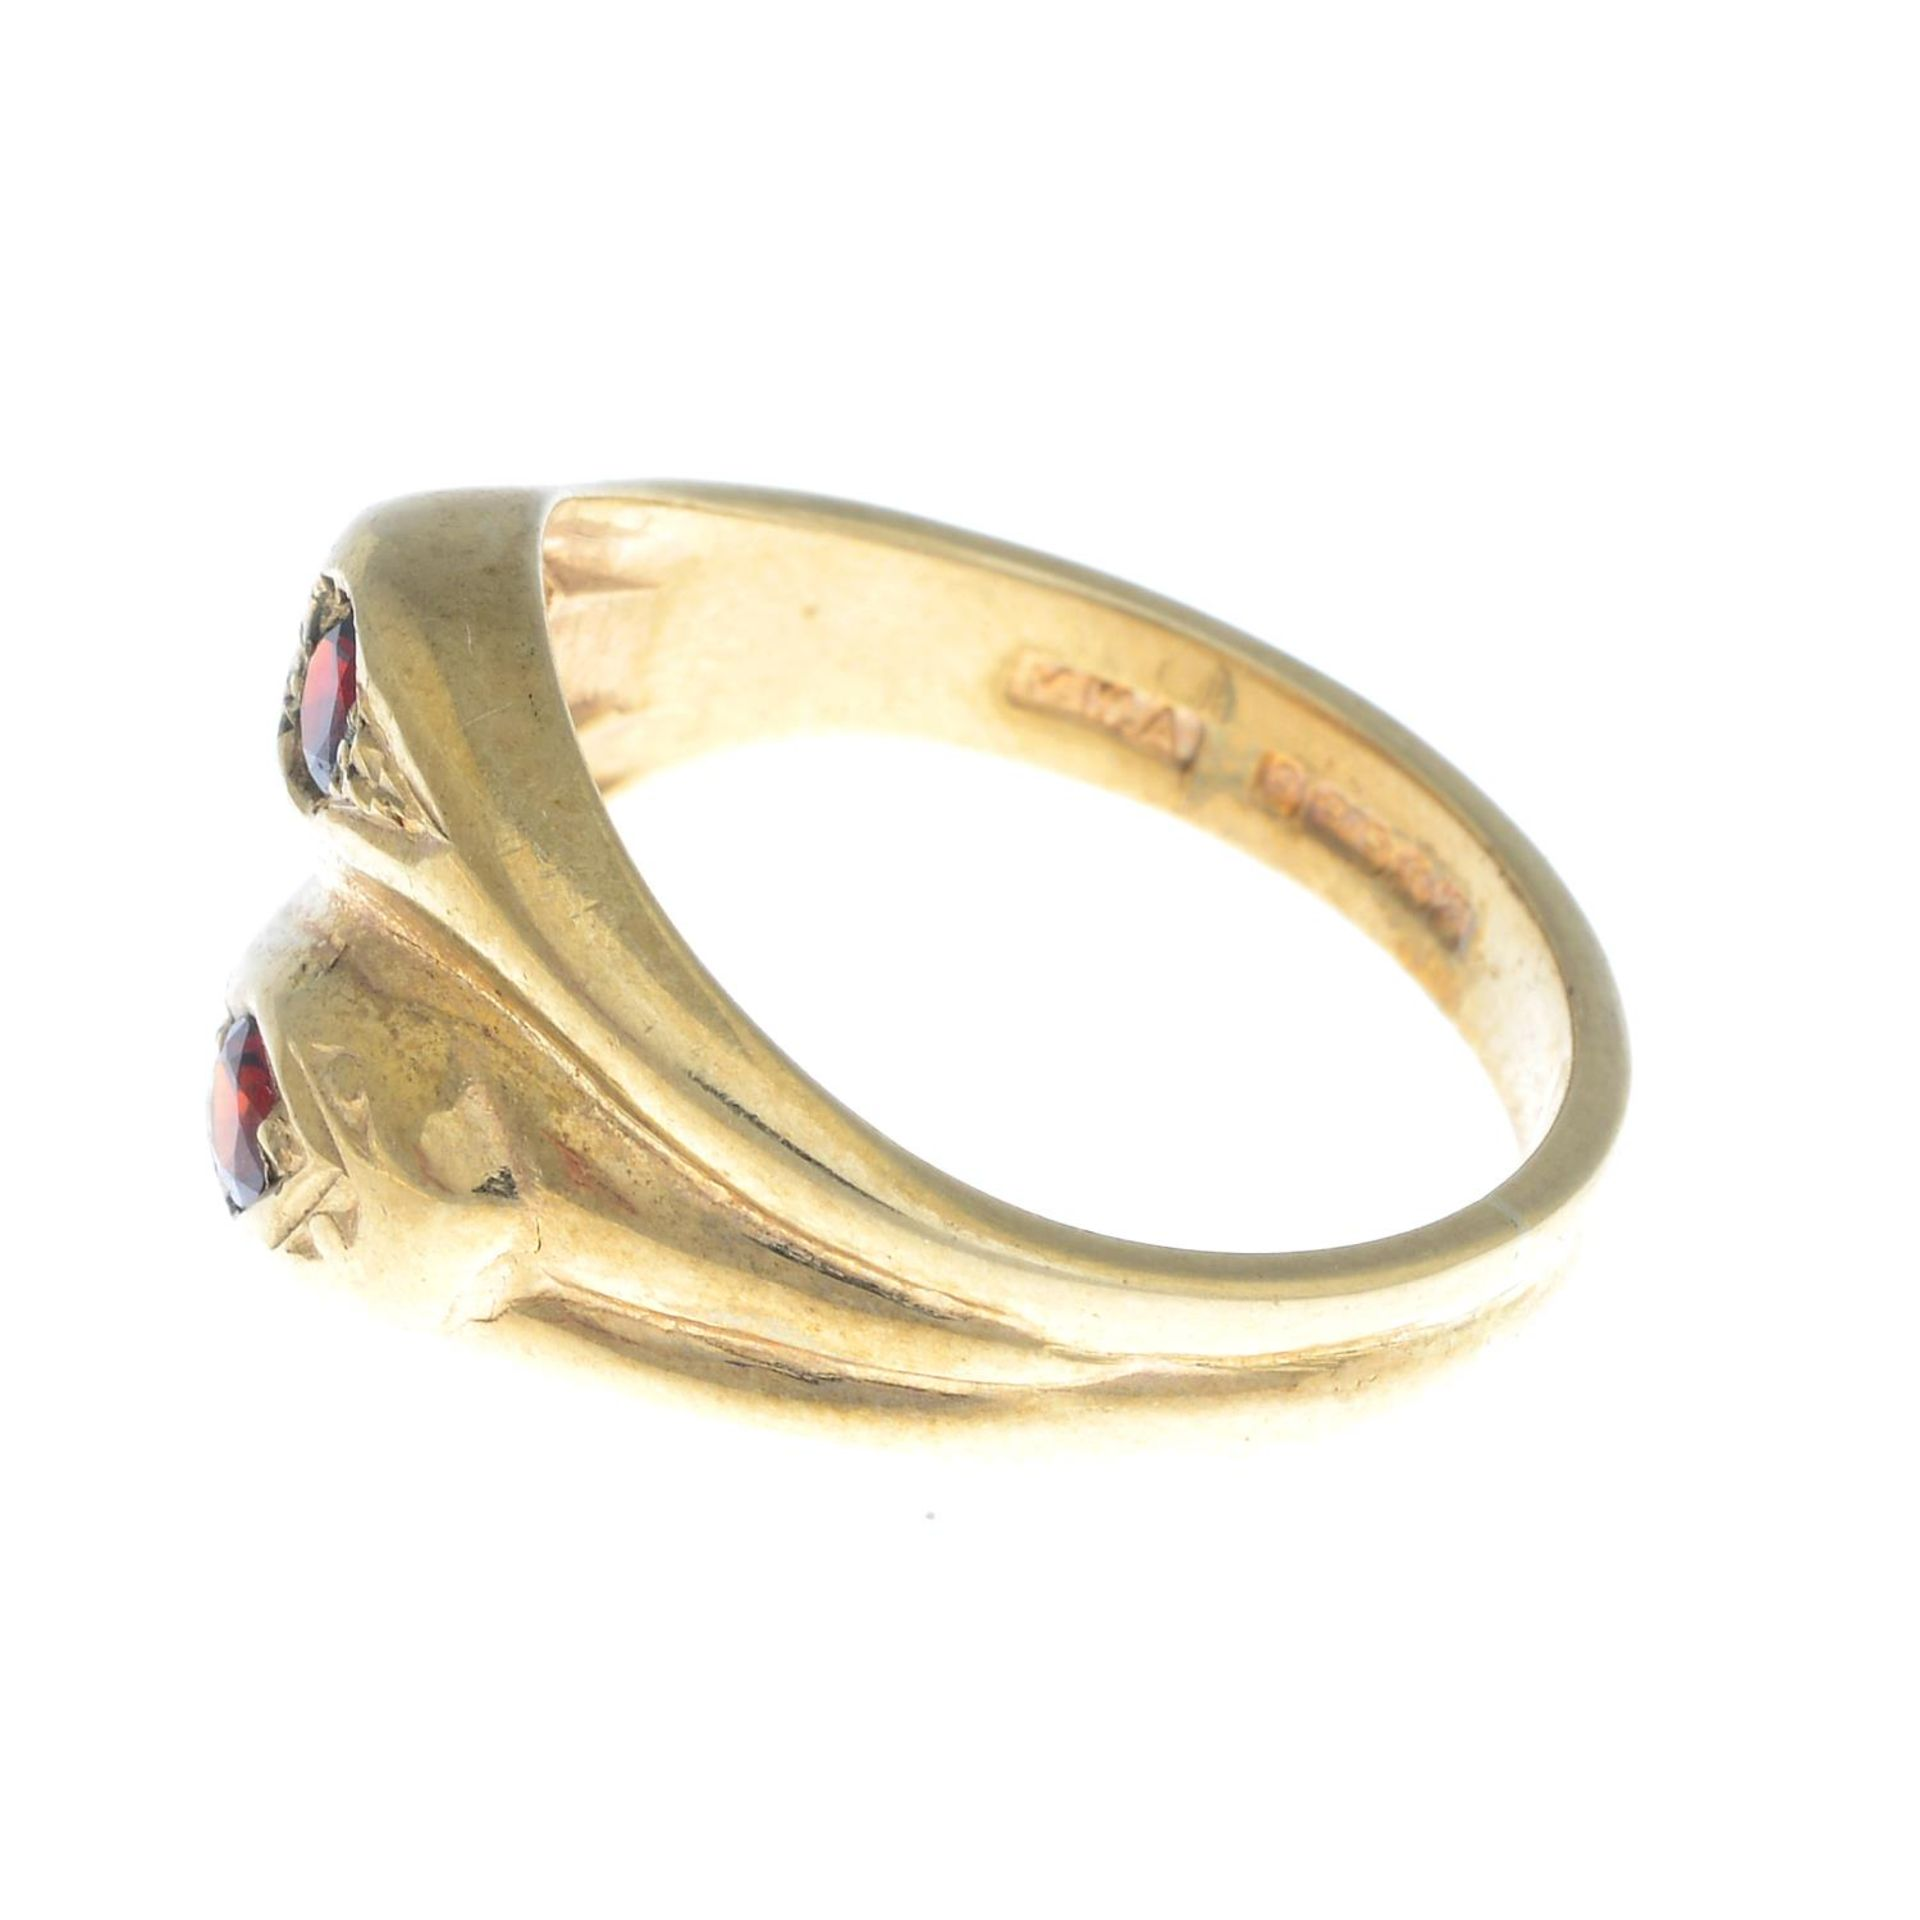 A 9ct gold snake ring, with red gem crest highlights.Hallmarks for 9ct gold. - Bild 3 aus 3